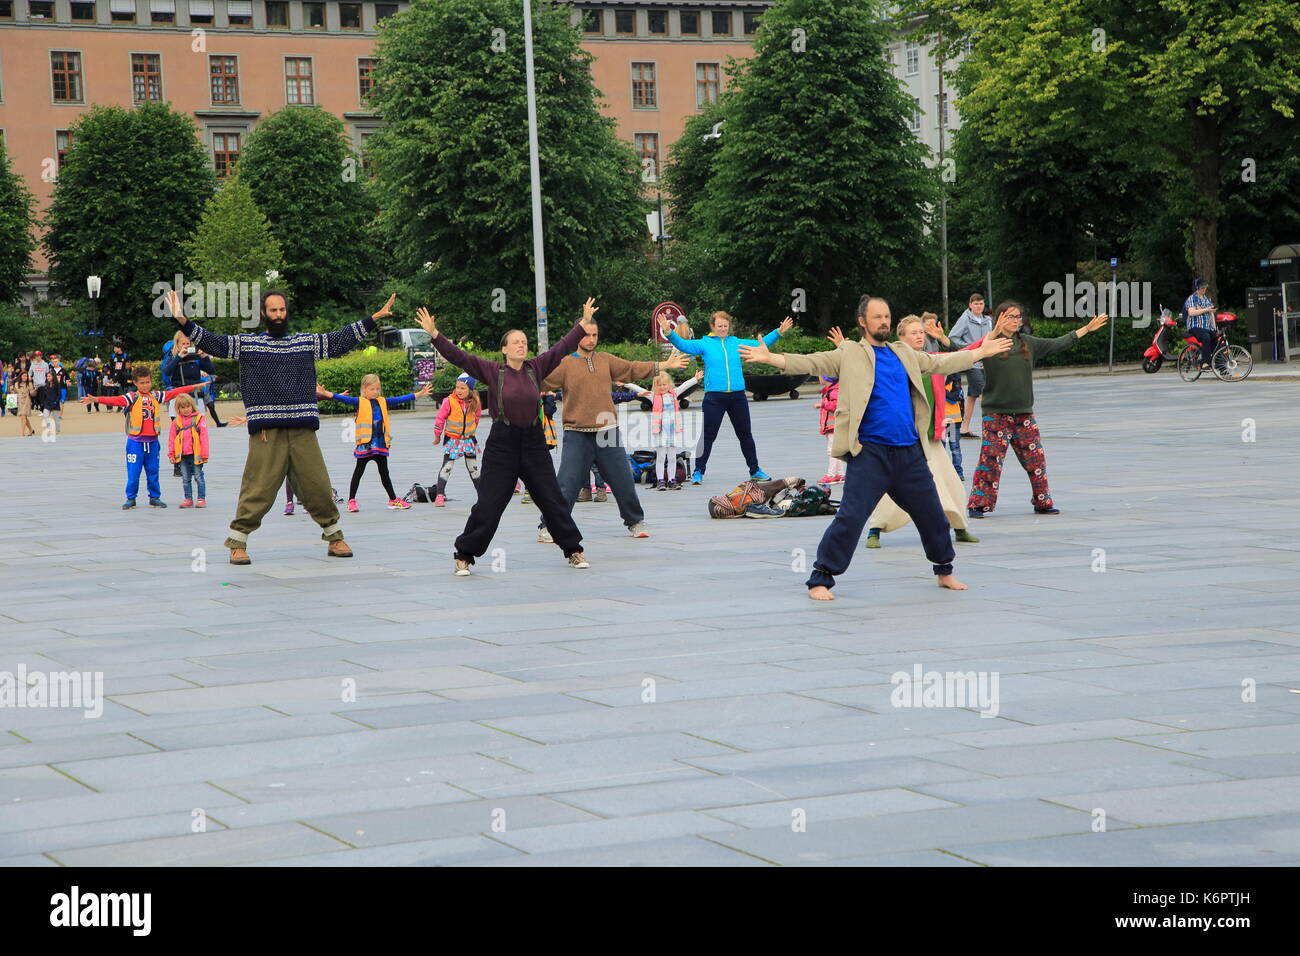 Tai Chi class exercising in public space in city centre, Bergen, Norway - Stock Image